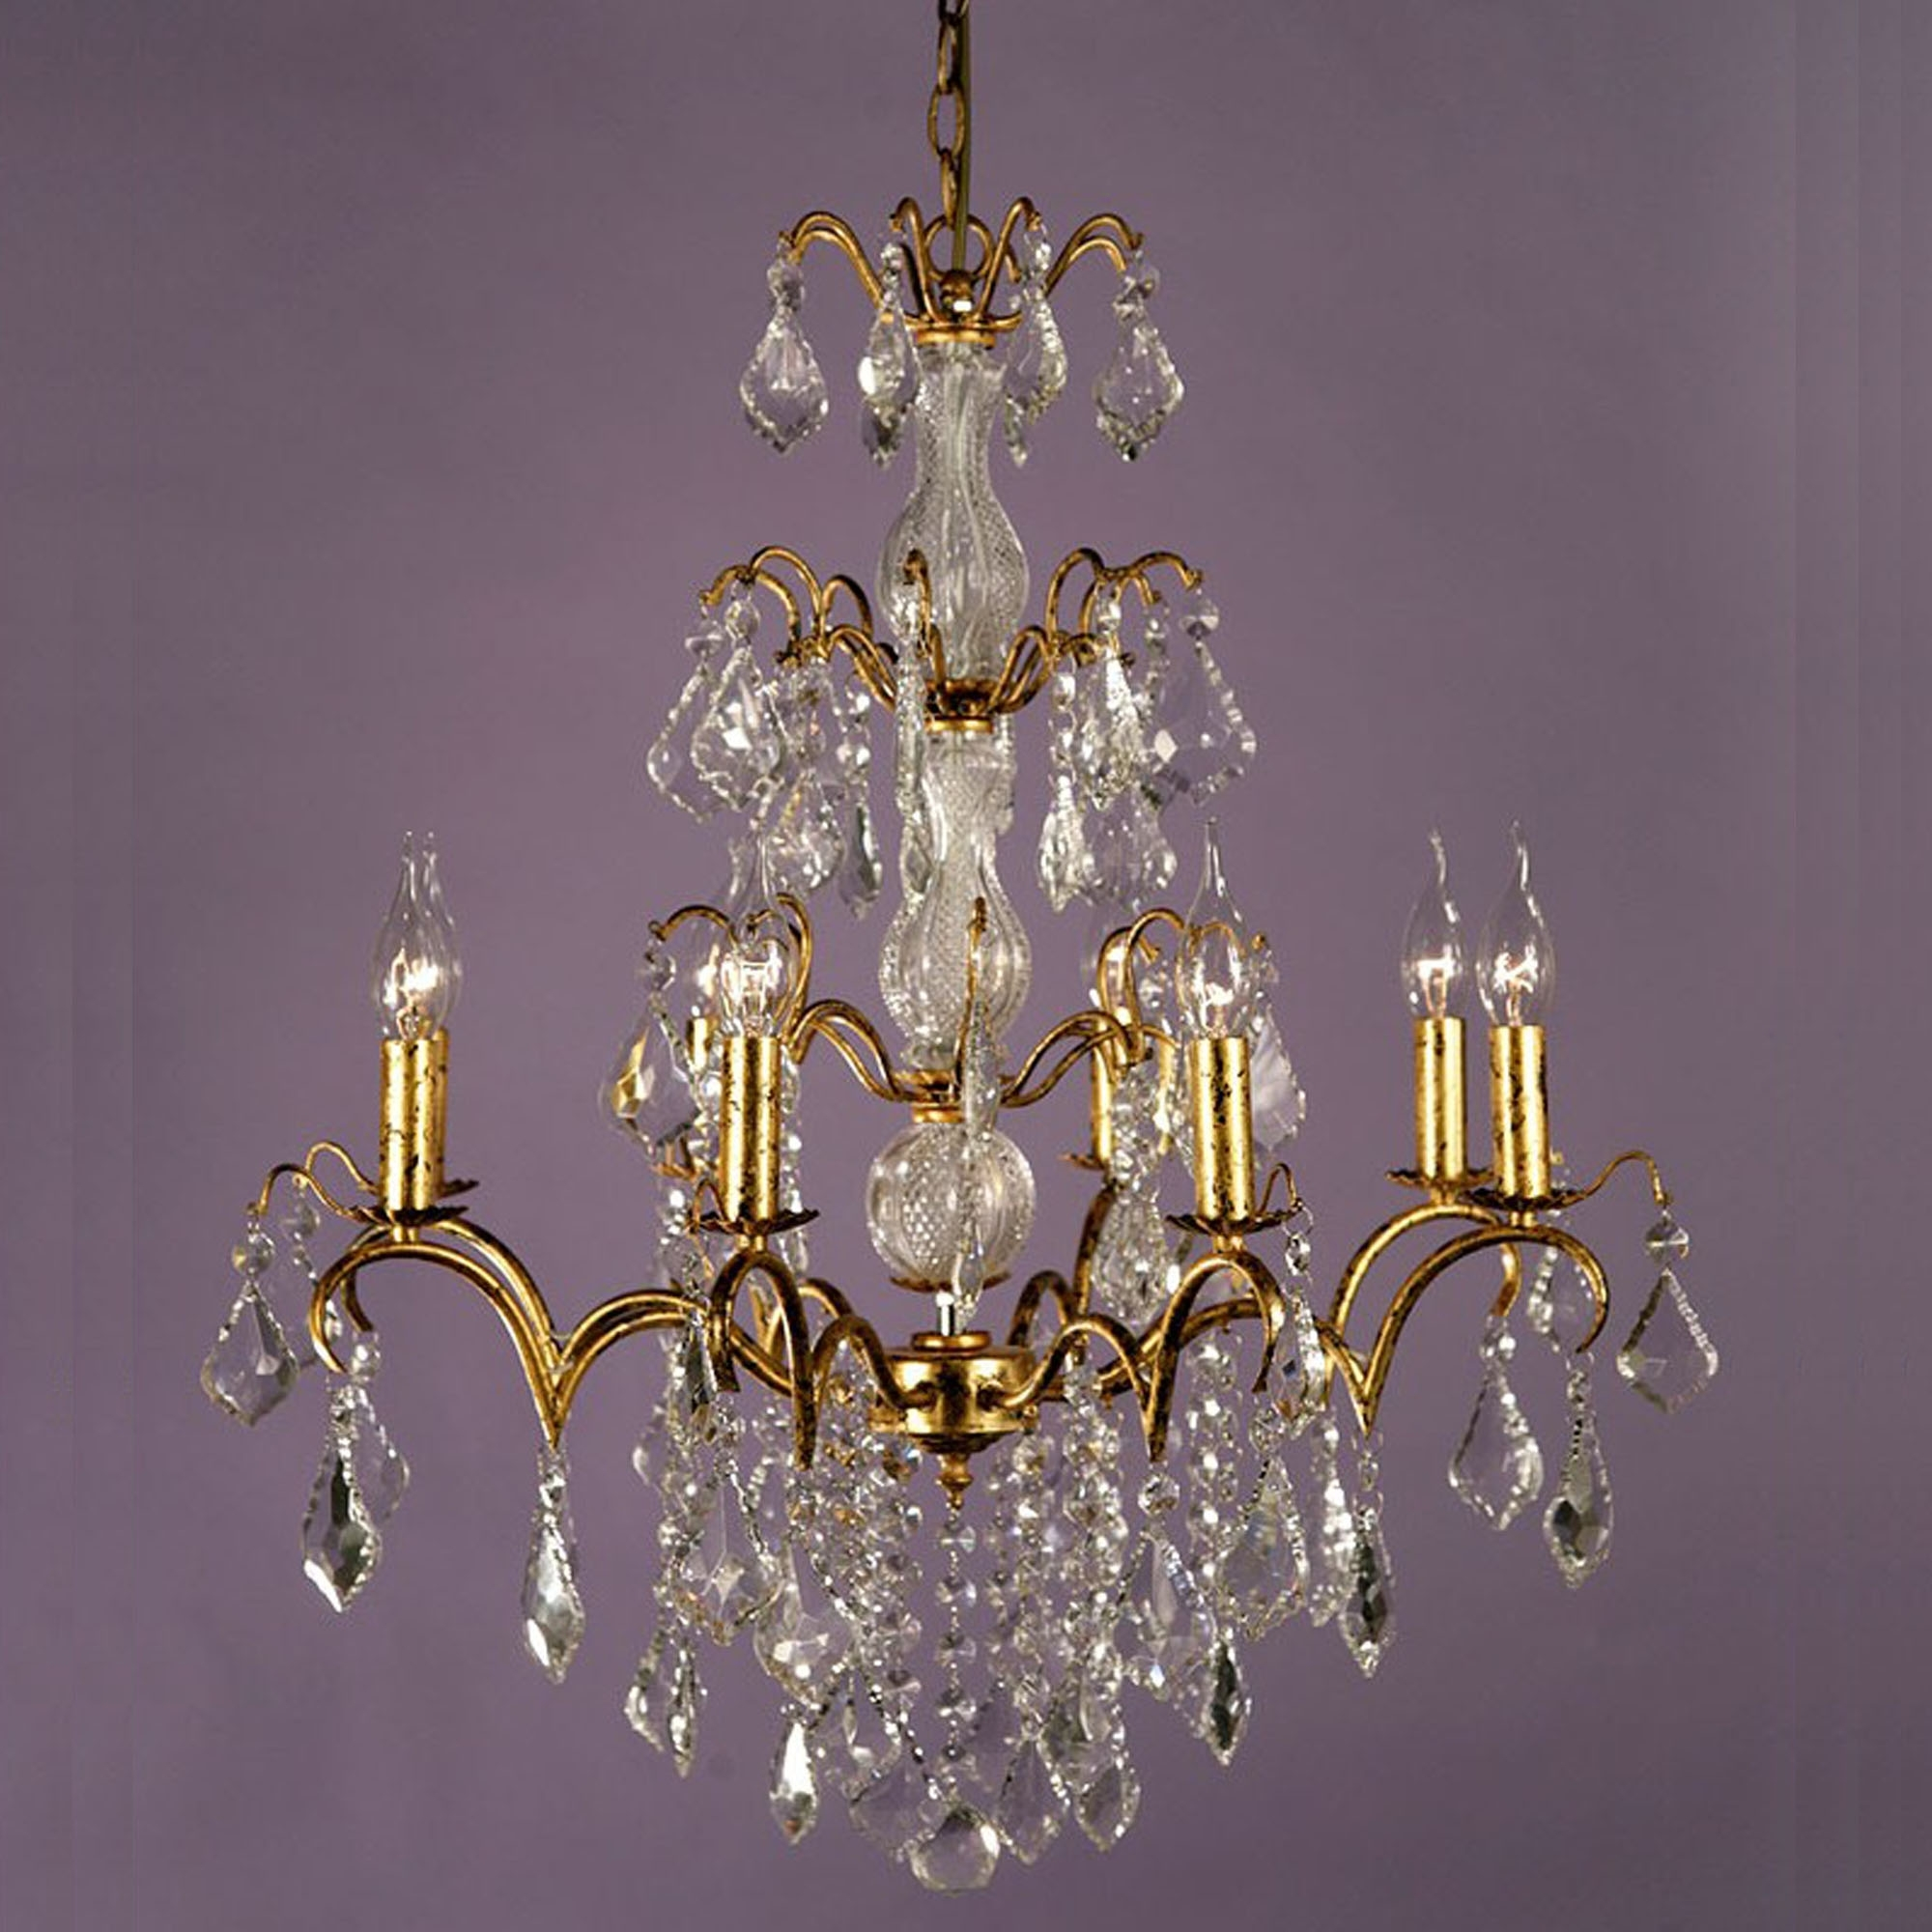 Charlotte Vintage Gold Antique French Style Chandelier